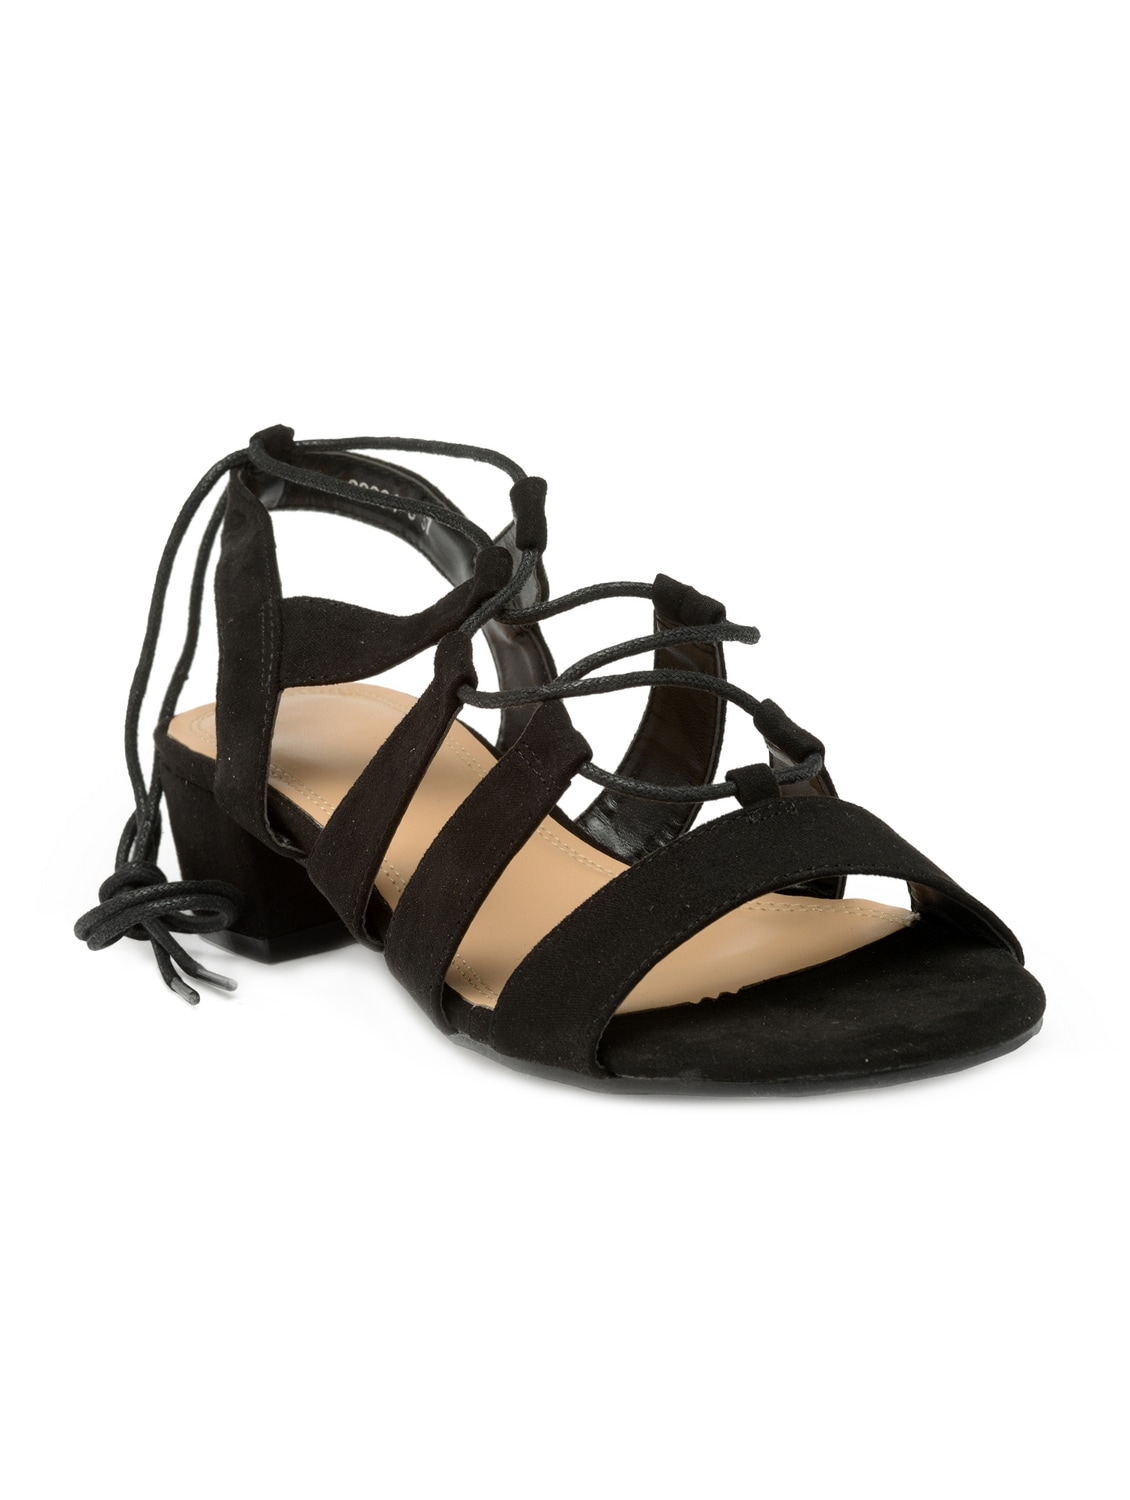 075f145e5d84 Buy Black Suede Laceup Sandals for Women from Flat N Heels for ...